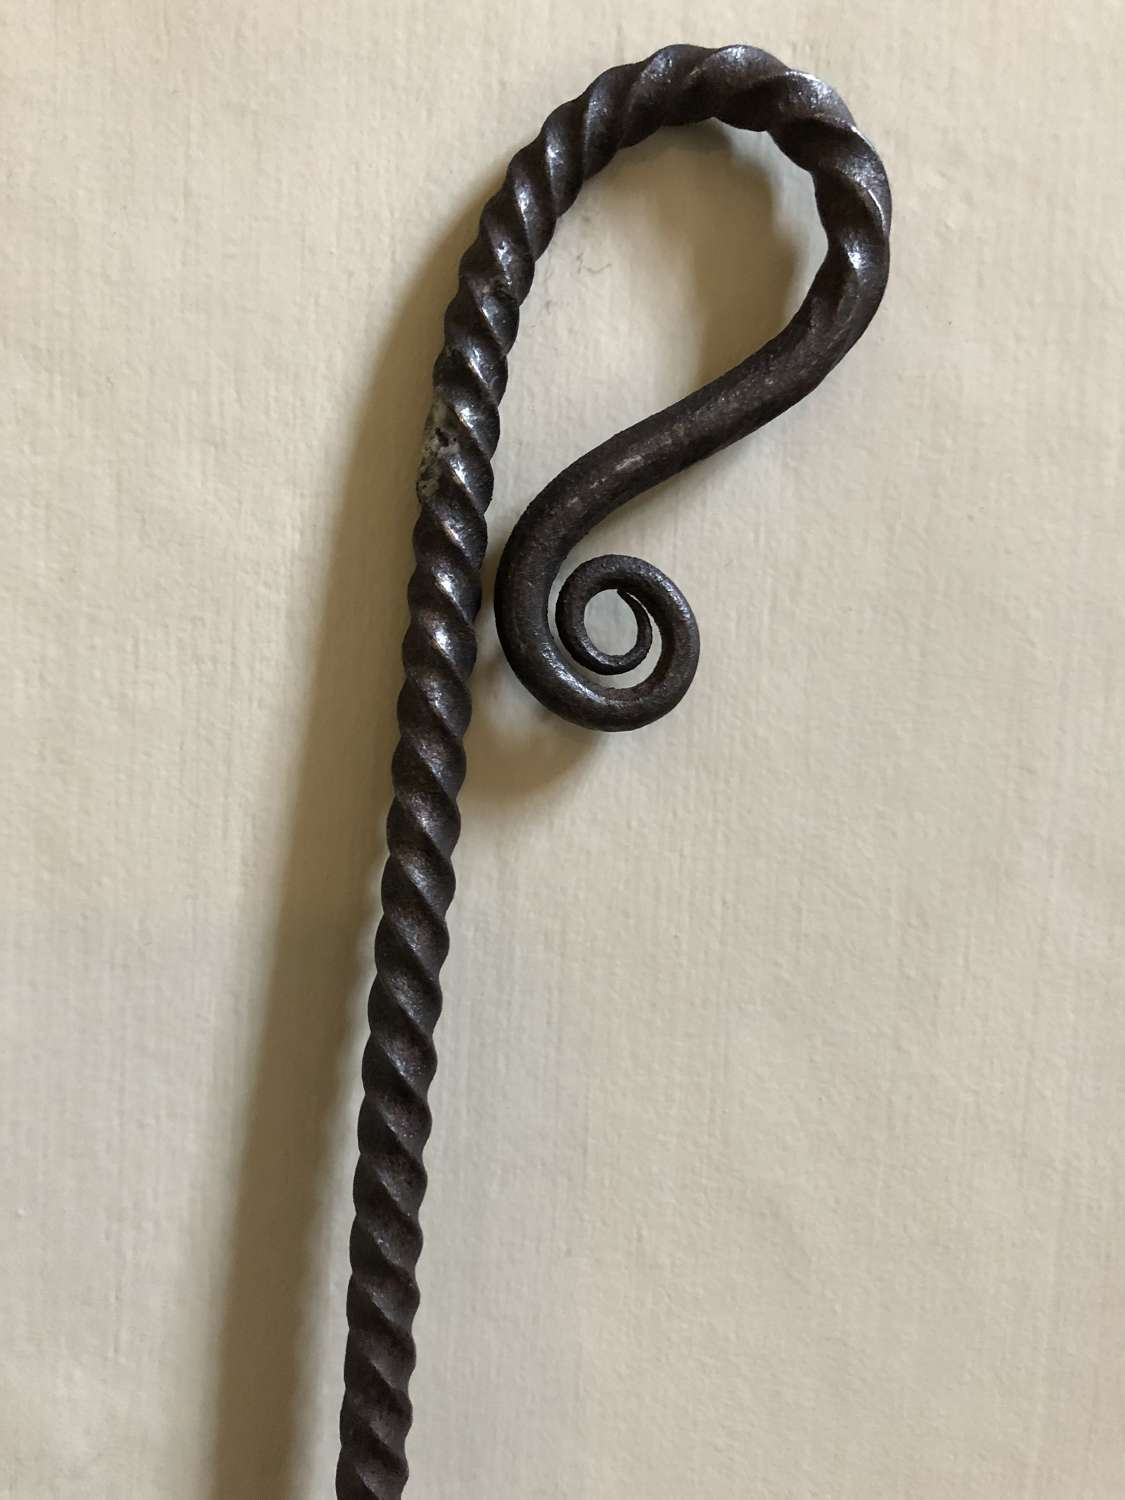 Antique Lamplighter's Snuffer